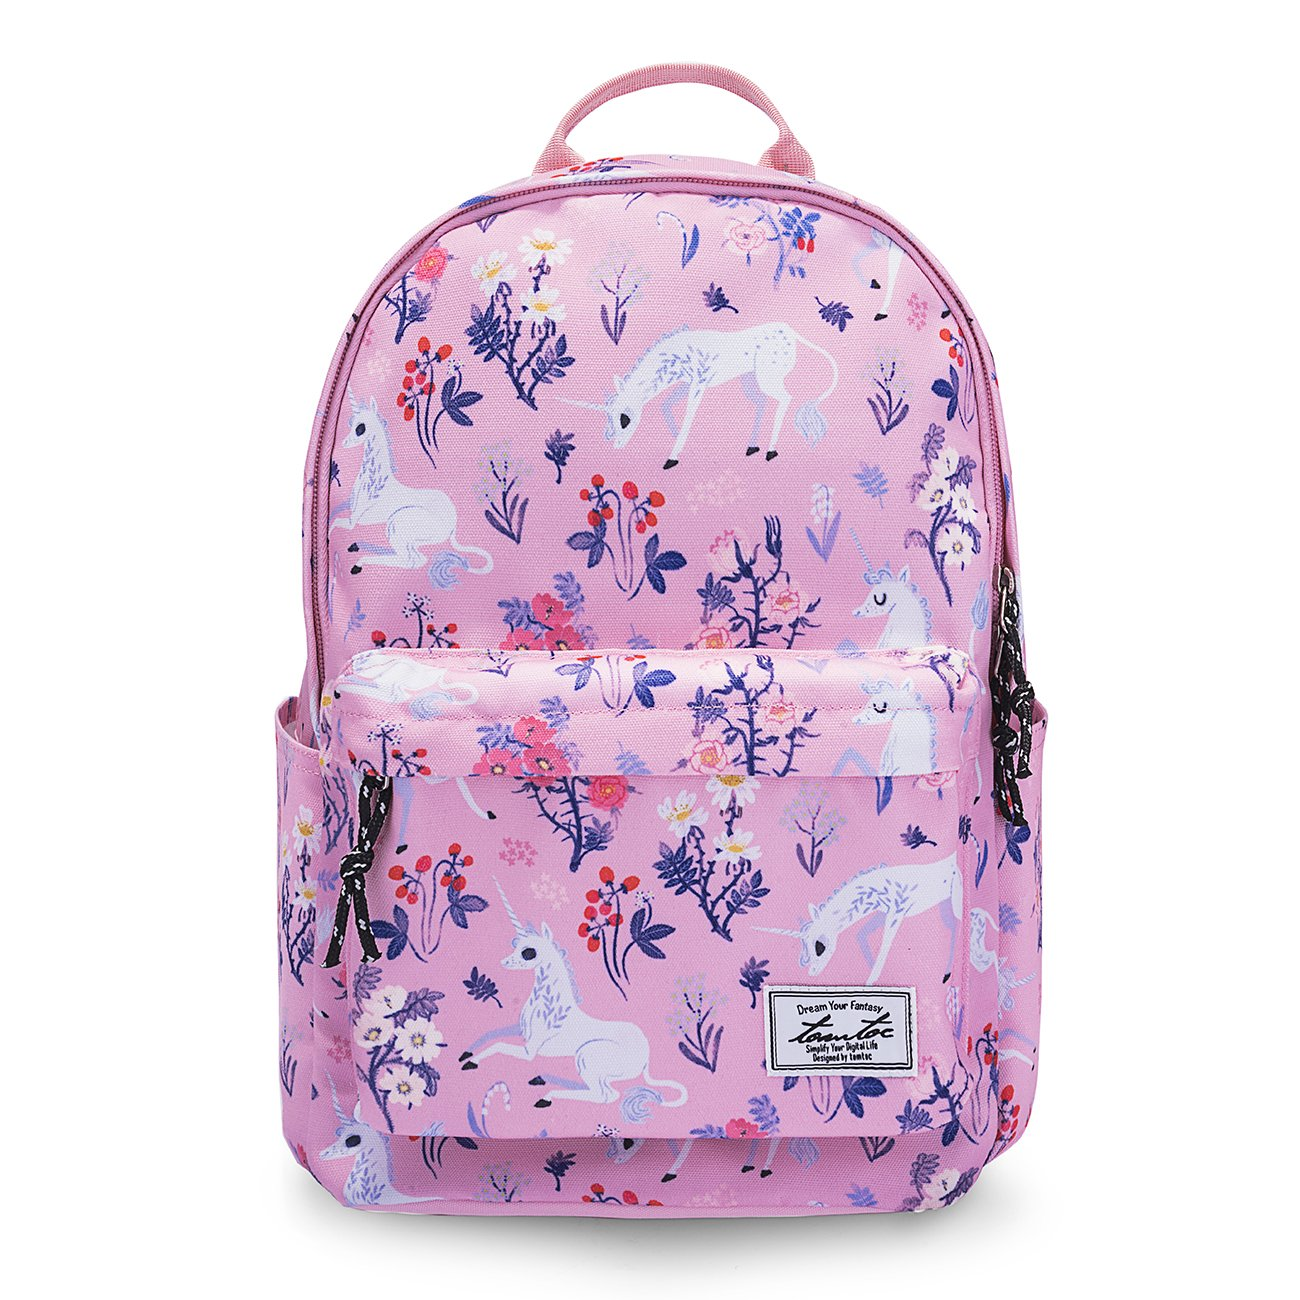 tomtoc College Backpack for Women Girls, 14 Inch Laptop Backpack Computer Bag Daypack Travel Bag School Bookbags Outdoor Weekend Bag – Fits up to 15 Inch MacBook, Unicorn Pink